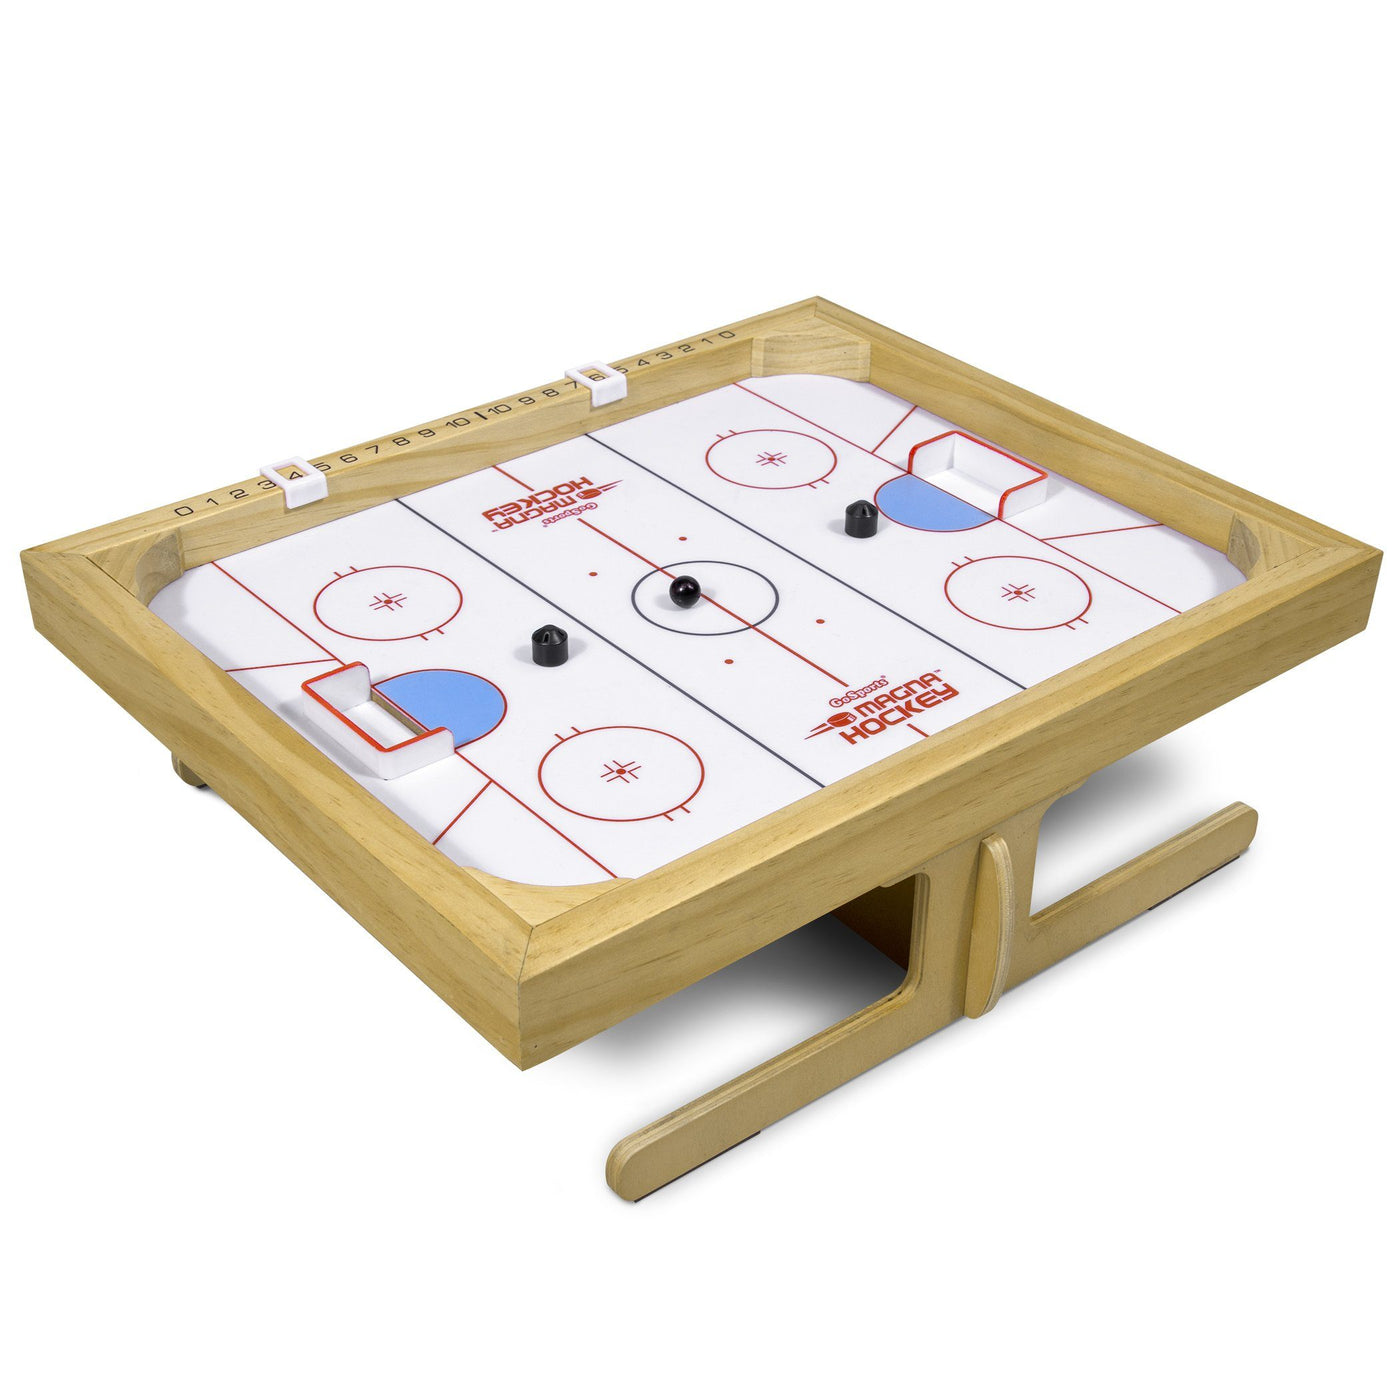 Gosports Magna Hockey Tabletop Board Game Magnetic Game Of Skill For Playgosports Com